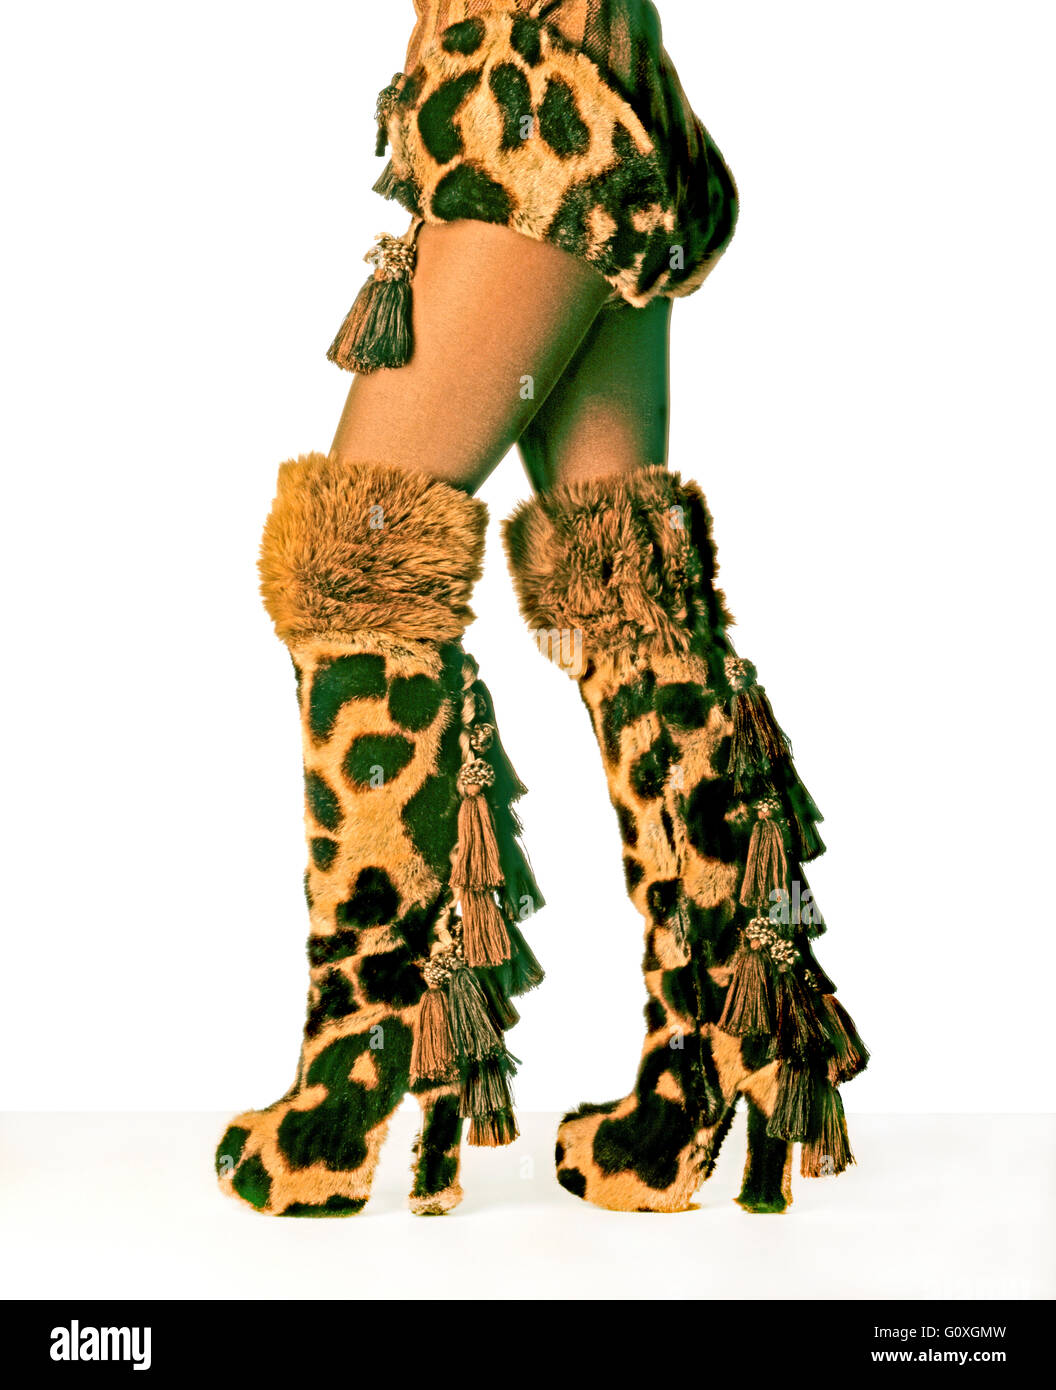 VIVIENNE WESTWOOD BOOTS WITH MATCHING HOT PANTS - Stock Image